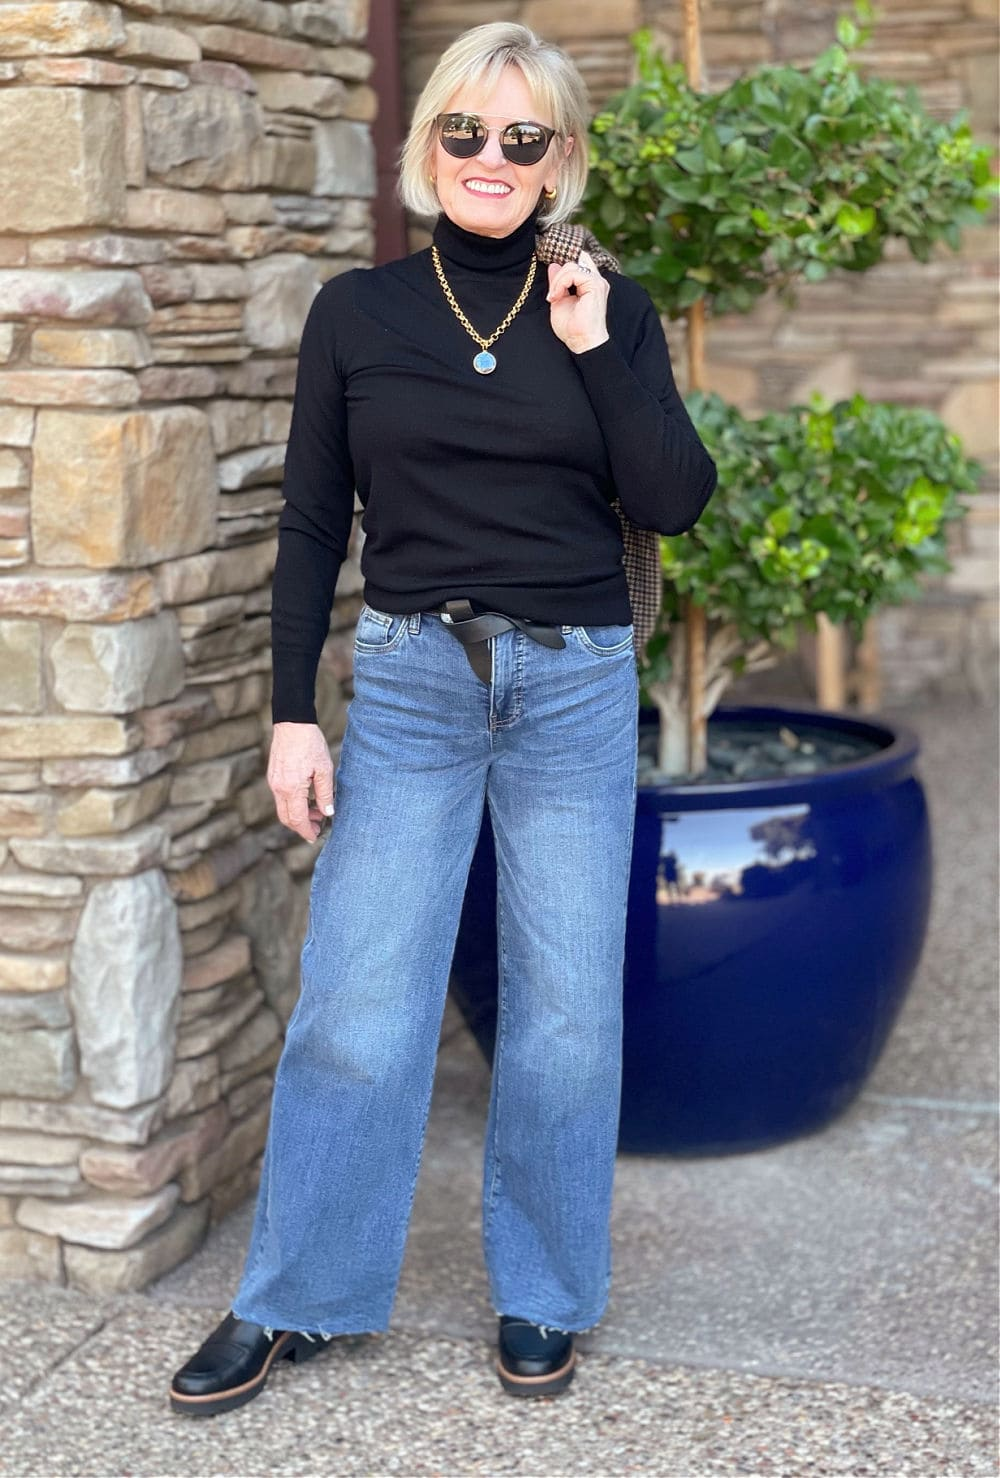 over 50 fashion blogger wearing black turtleneck and wide leg jeans